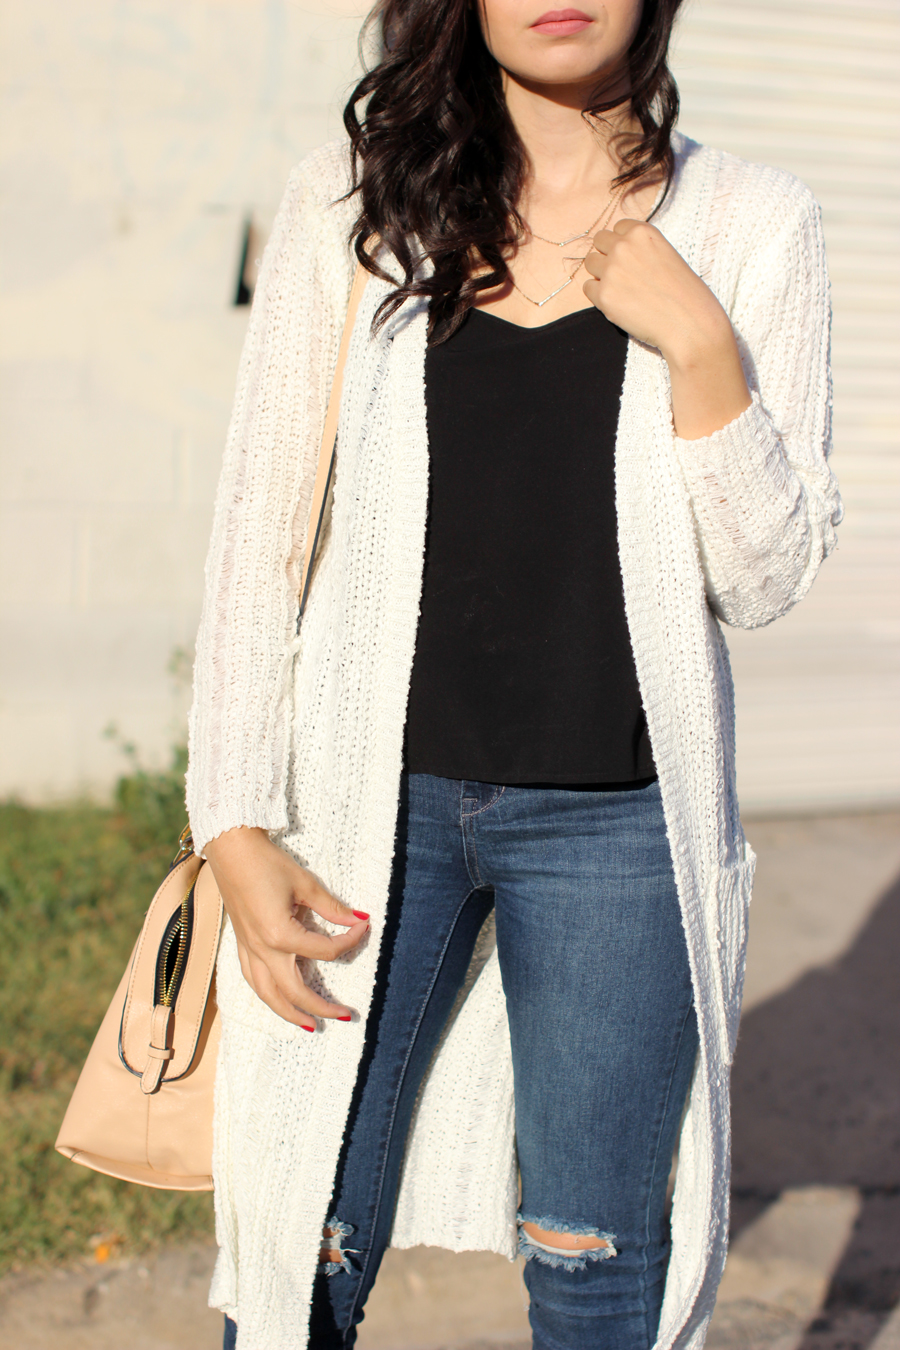 FTT-SHOP-PINK-BLUSH-RIPPED-JEANS-DUSTER-CARDIGAN-CASUAL5